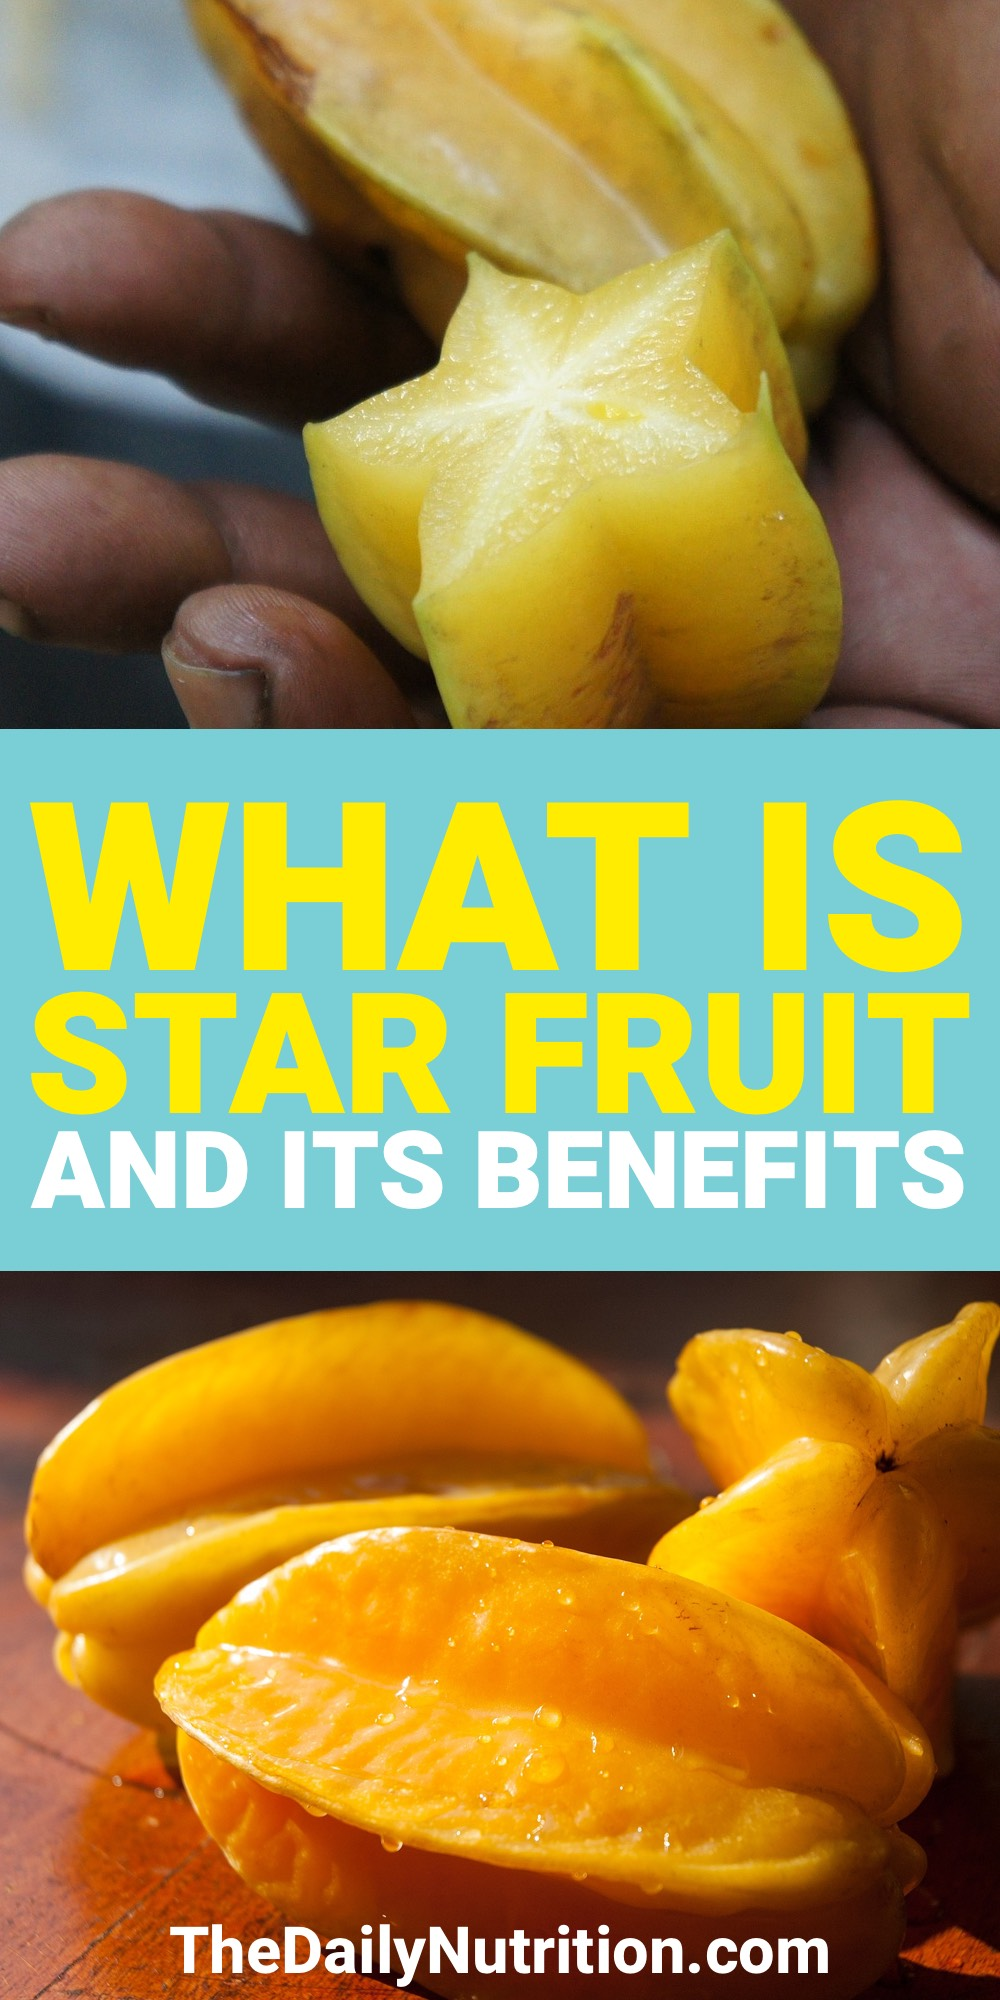 Star fruit is something you may have never had before. Find out star fruit benefits here.